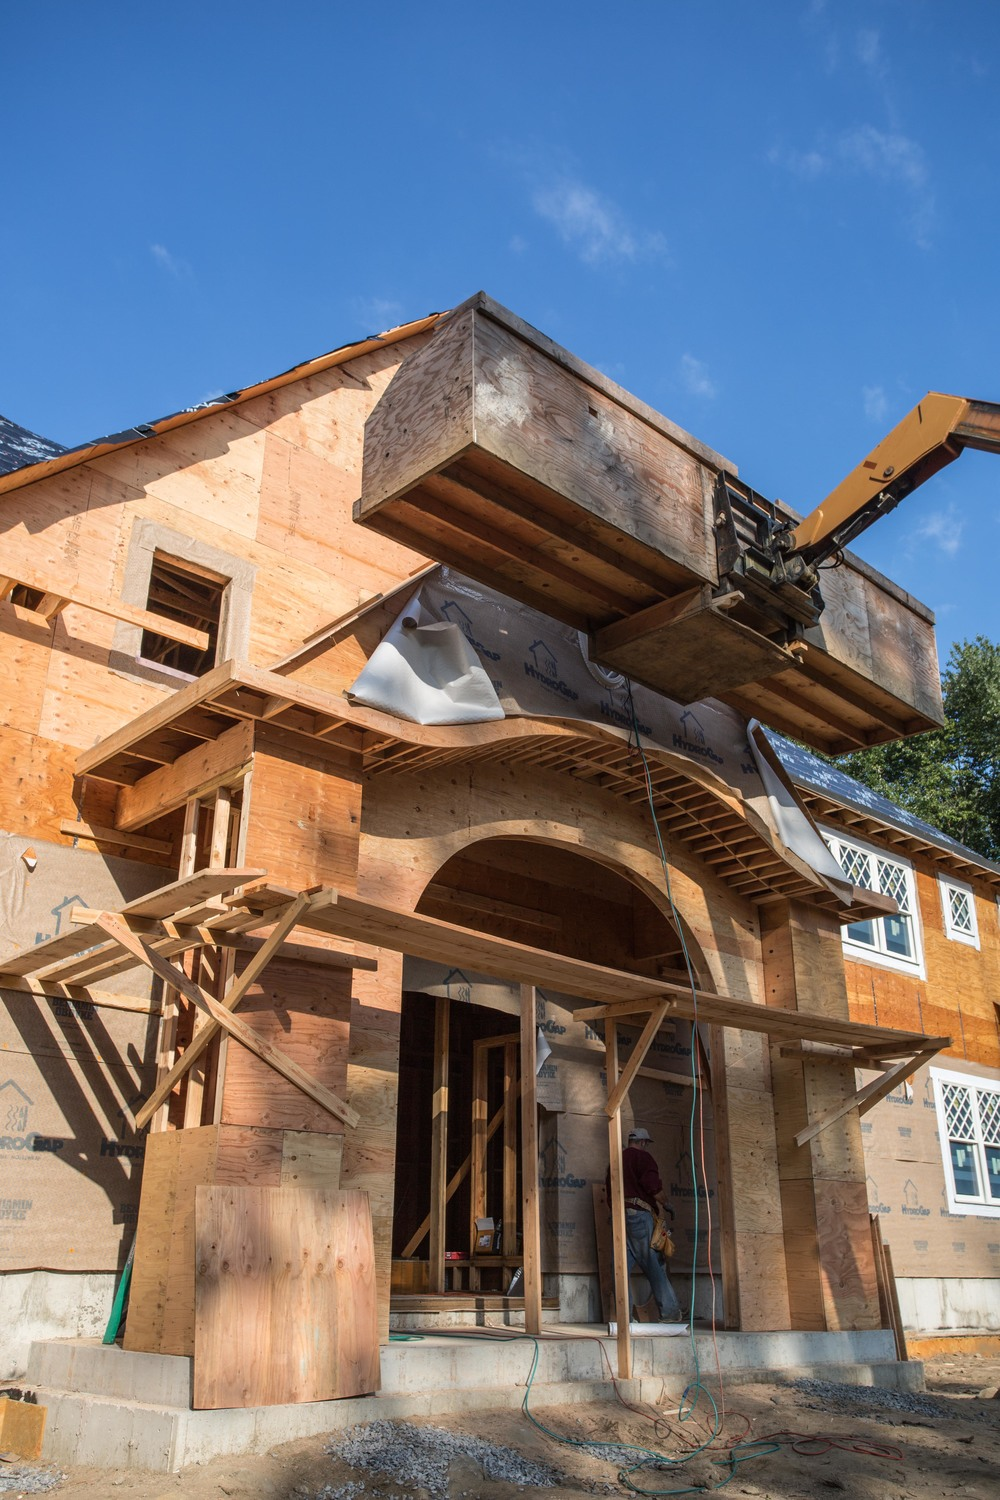 DRY_Framing and Sheeting_09.19.14.jpg